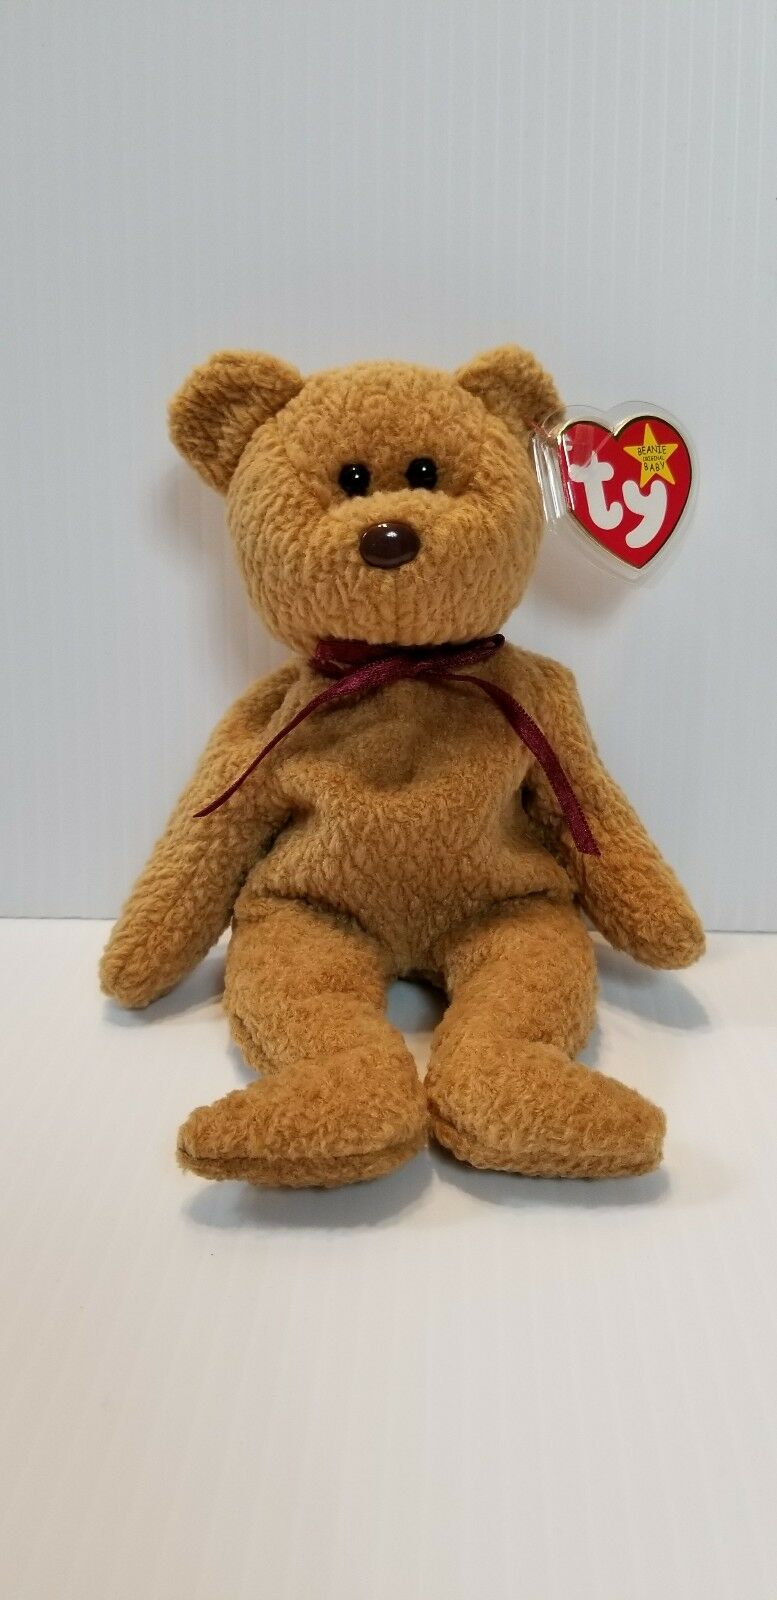 TY BEANIE BABY CURLY BEAR WITH RETIRED WITH BEAR ERRORS GEM RARE MINT a918ae a6733544aead